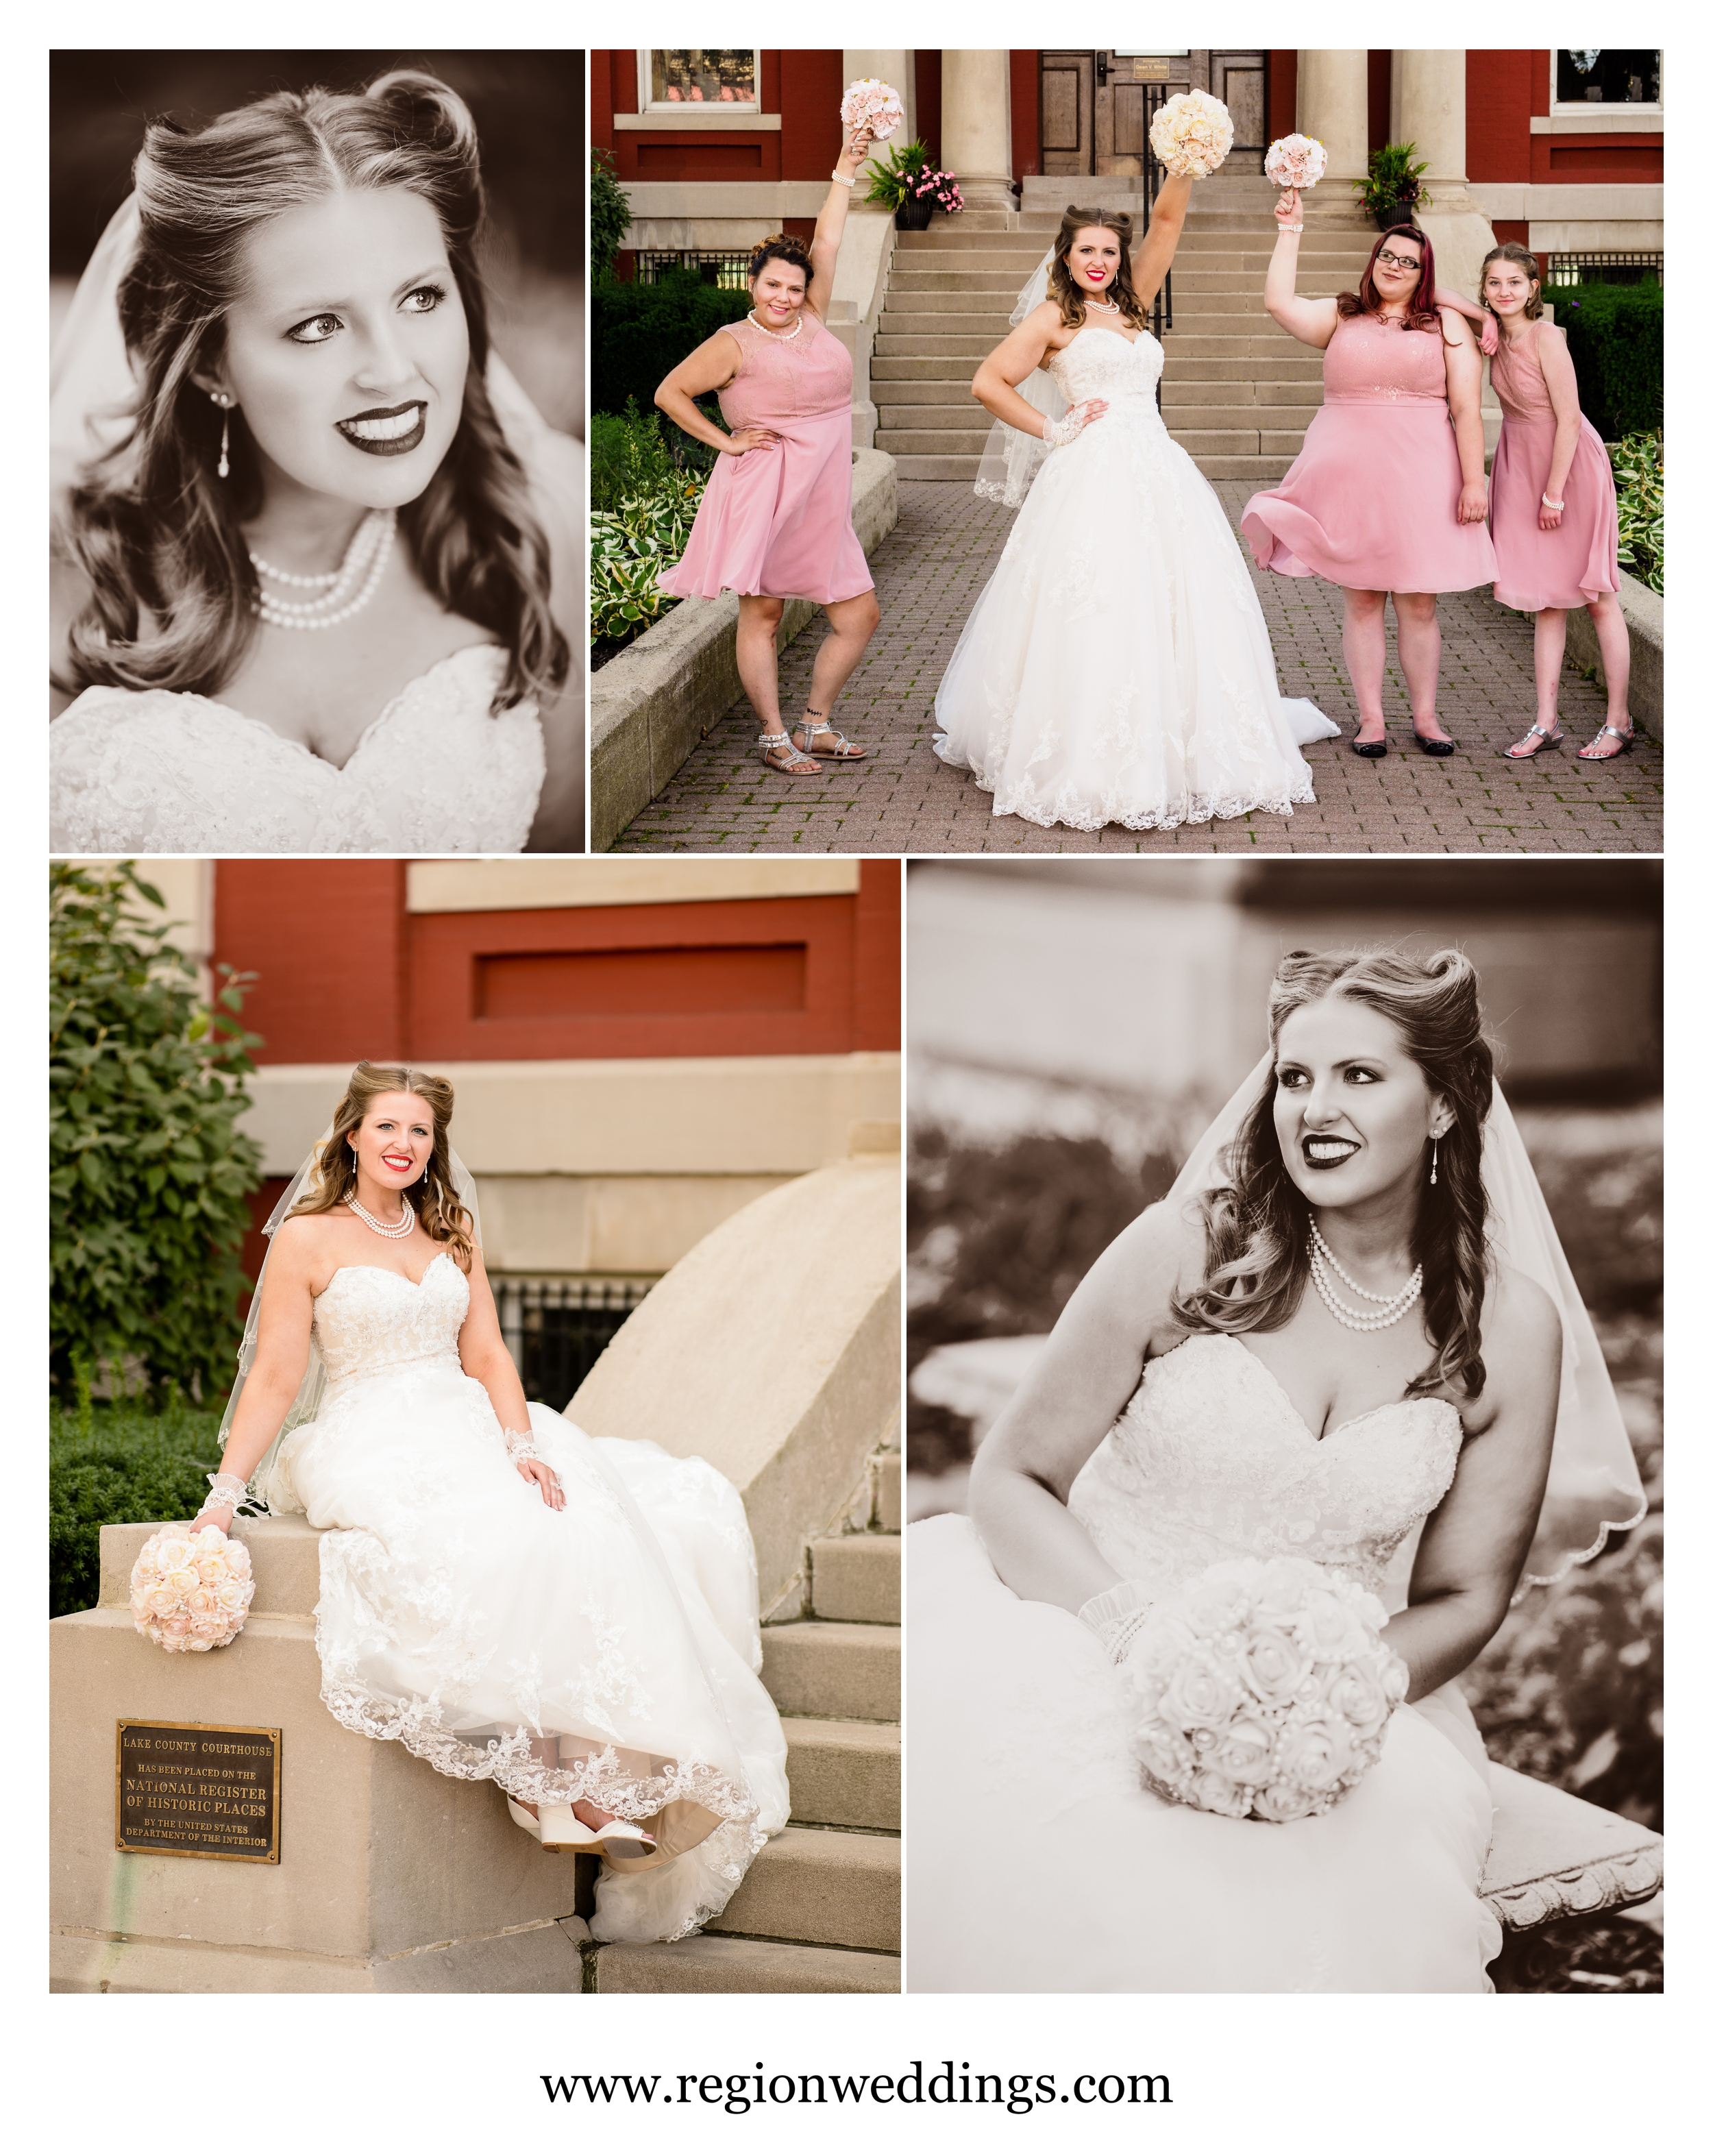 The bride and her bridesmaids have fun in in downtown Crown Point.